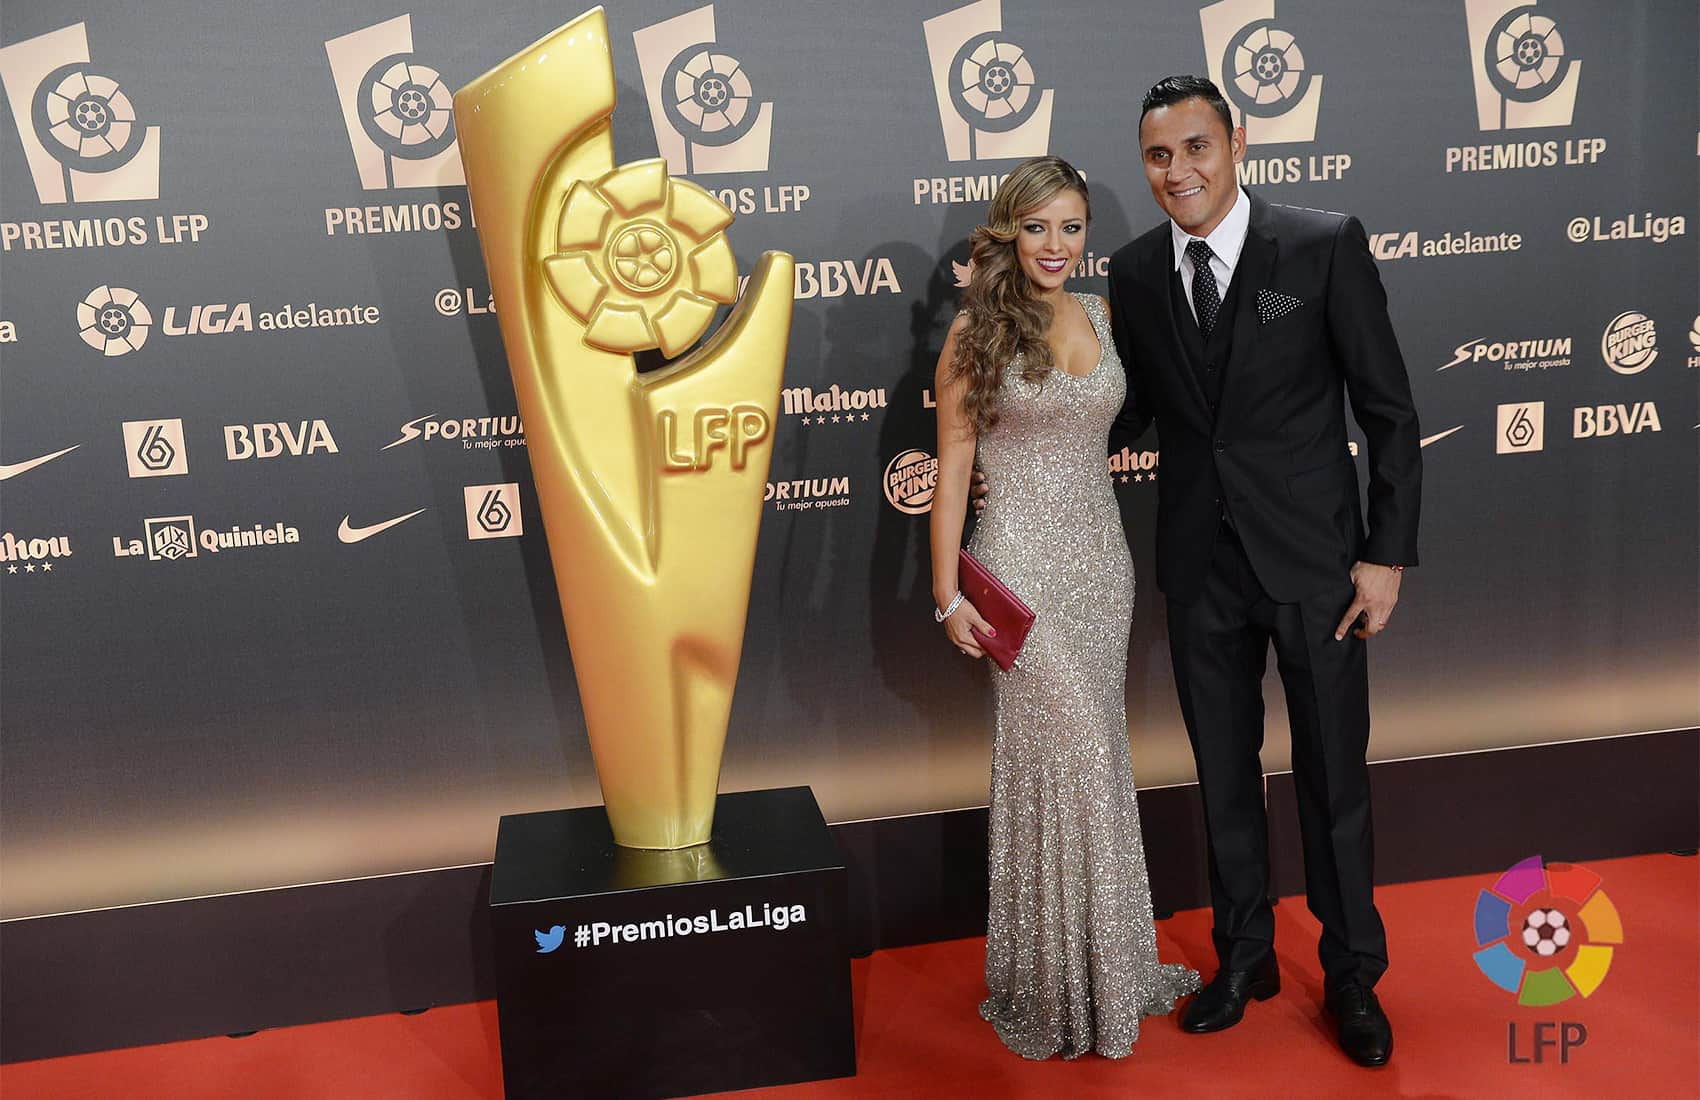 Keylor Navas and wife Andrea Salas